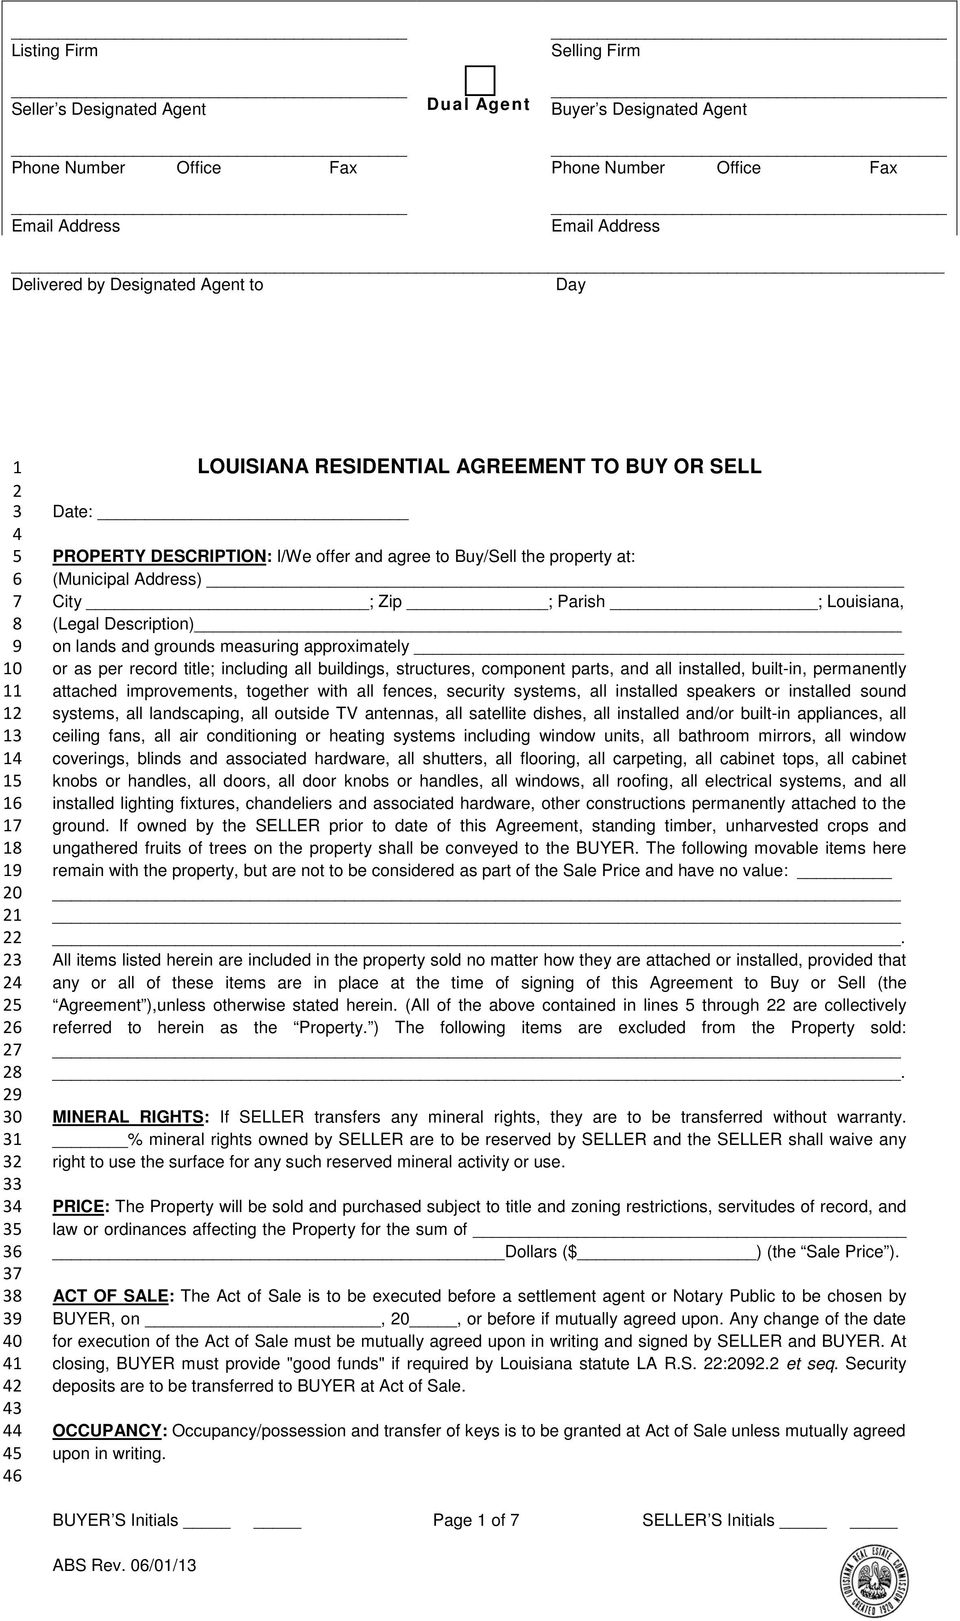 Louisiana Residential Agreement To Buy Or Sell Pdf